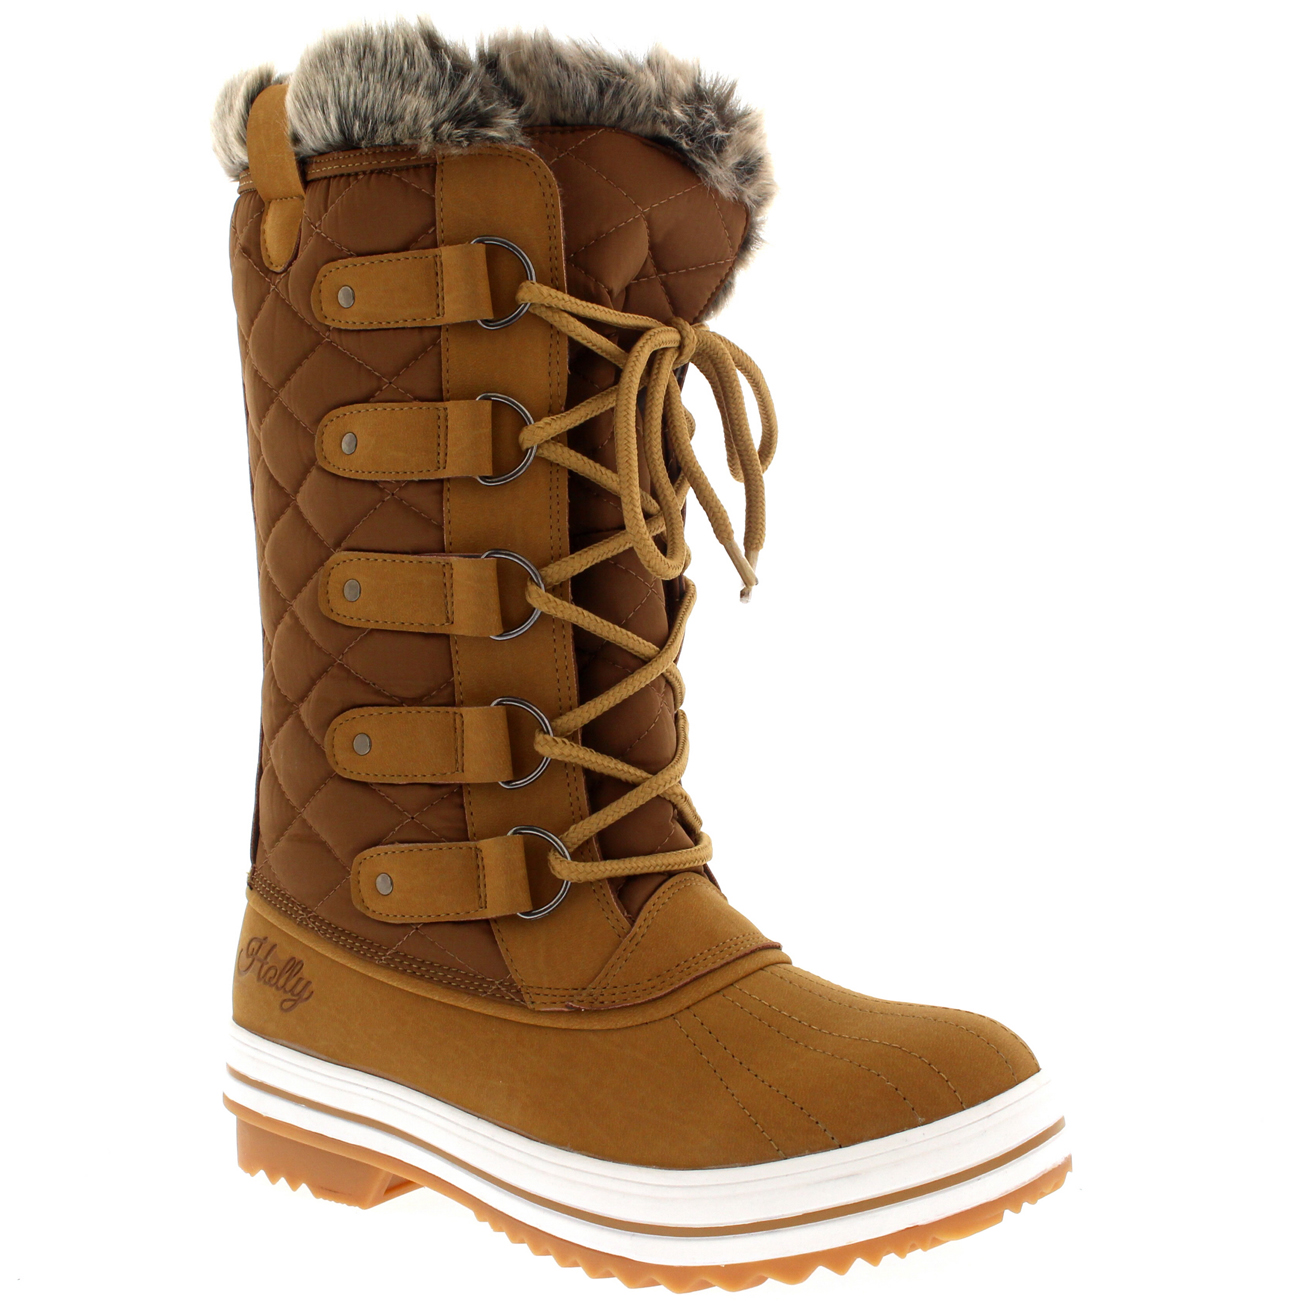 How to Fit a Dog for Winter Boots recommendations